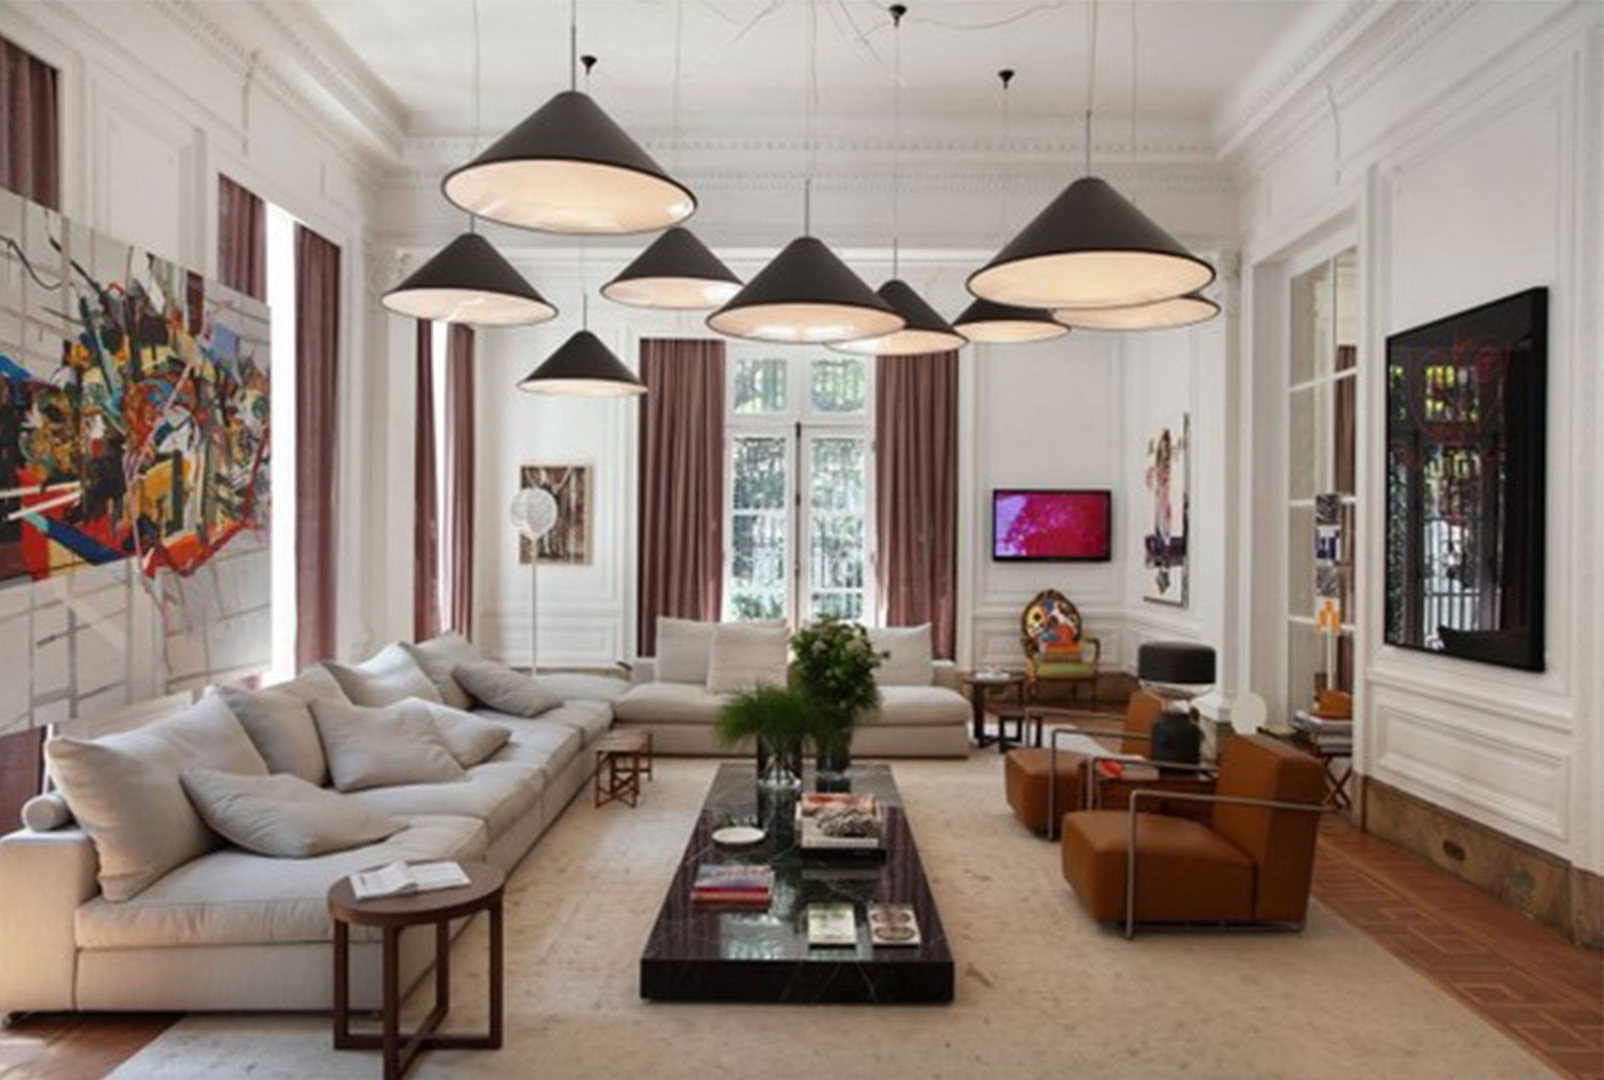 Living Room Wall Decor With Lights Can Brighten Up Your Home